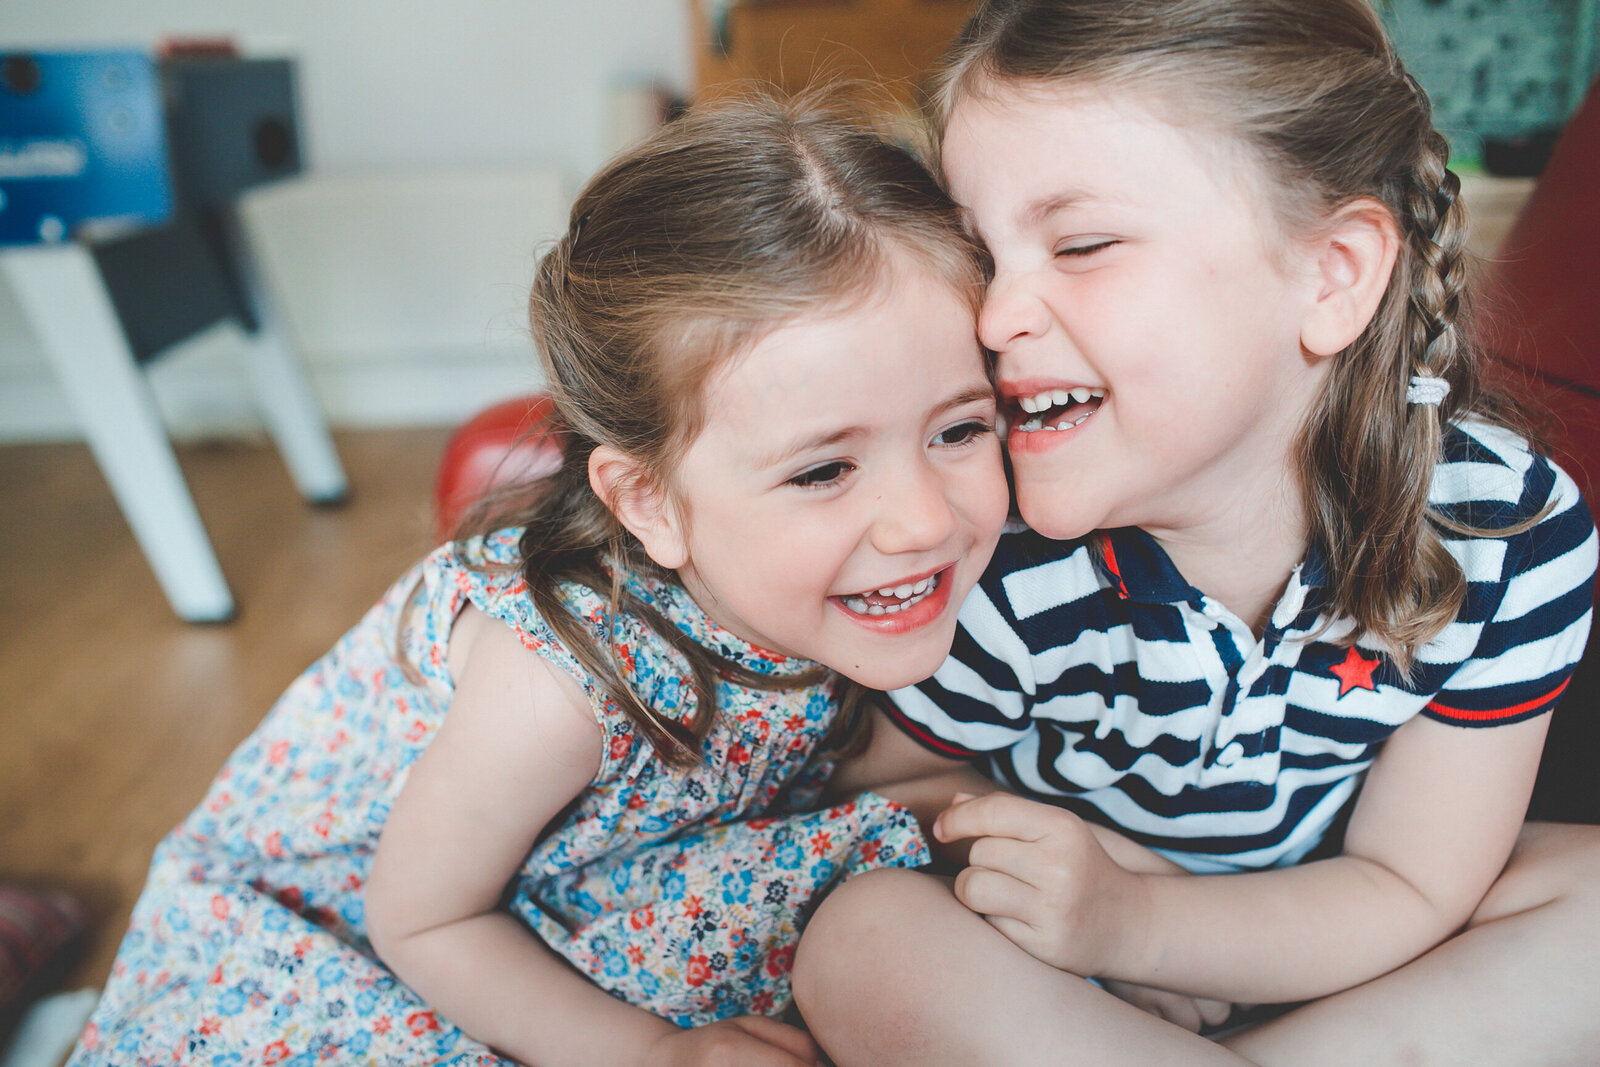 FP_FAMILY-SISTERS-GIGGLING-LONDON-PHOTOGRAPHER-0010